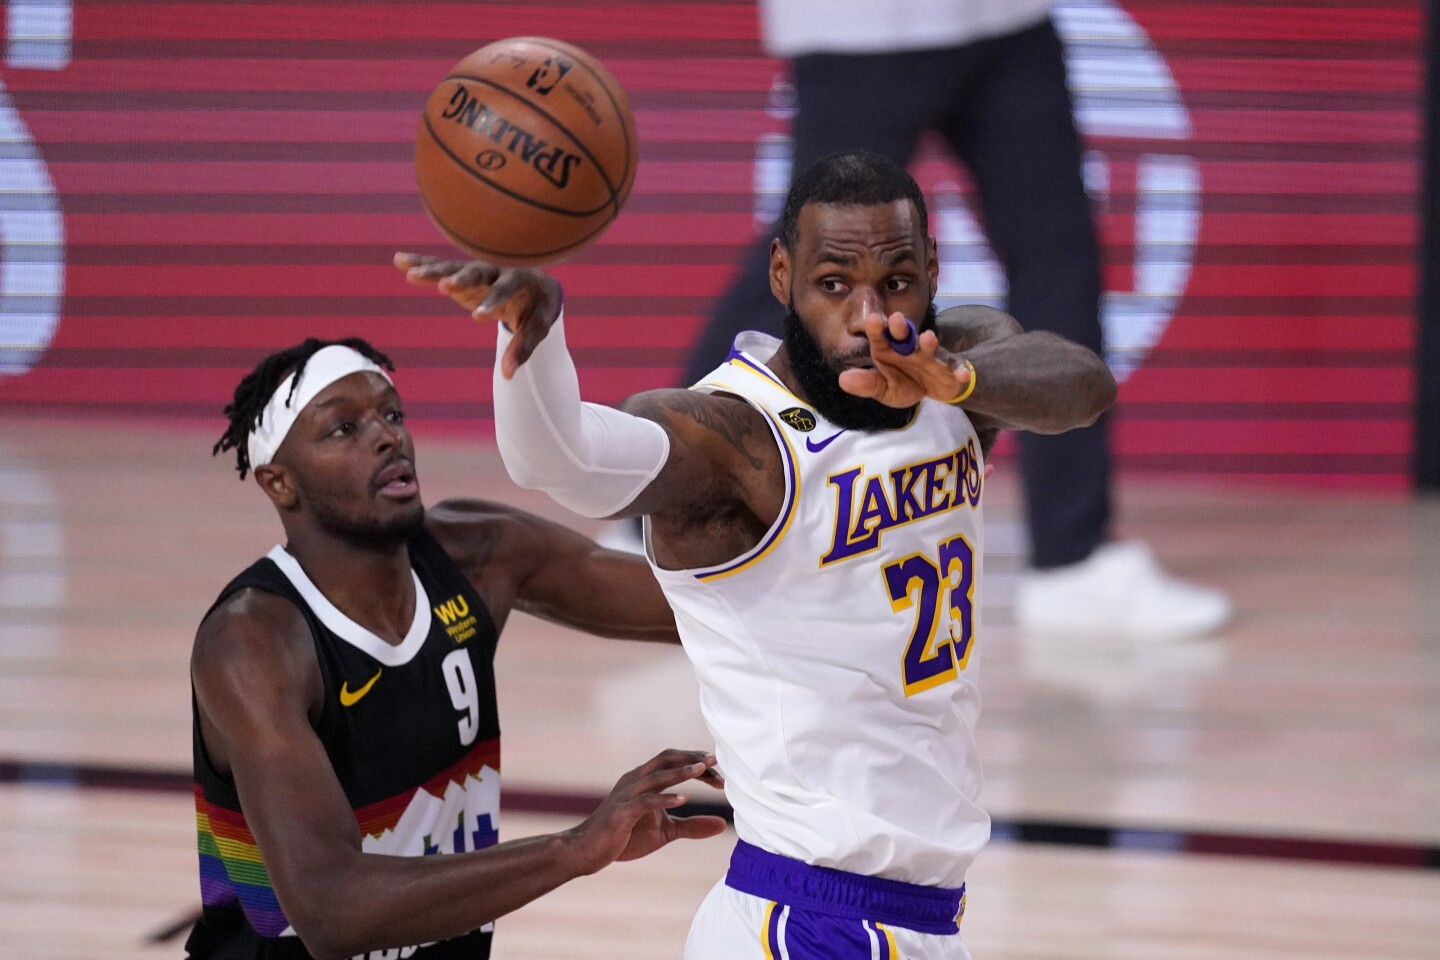 Lakers forward LeBron James, right, passes in front of Denver Nuggets forward Jerami Grant during the first half of Game 3.